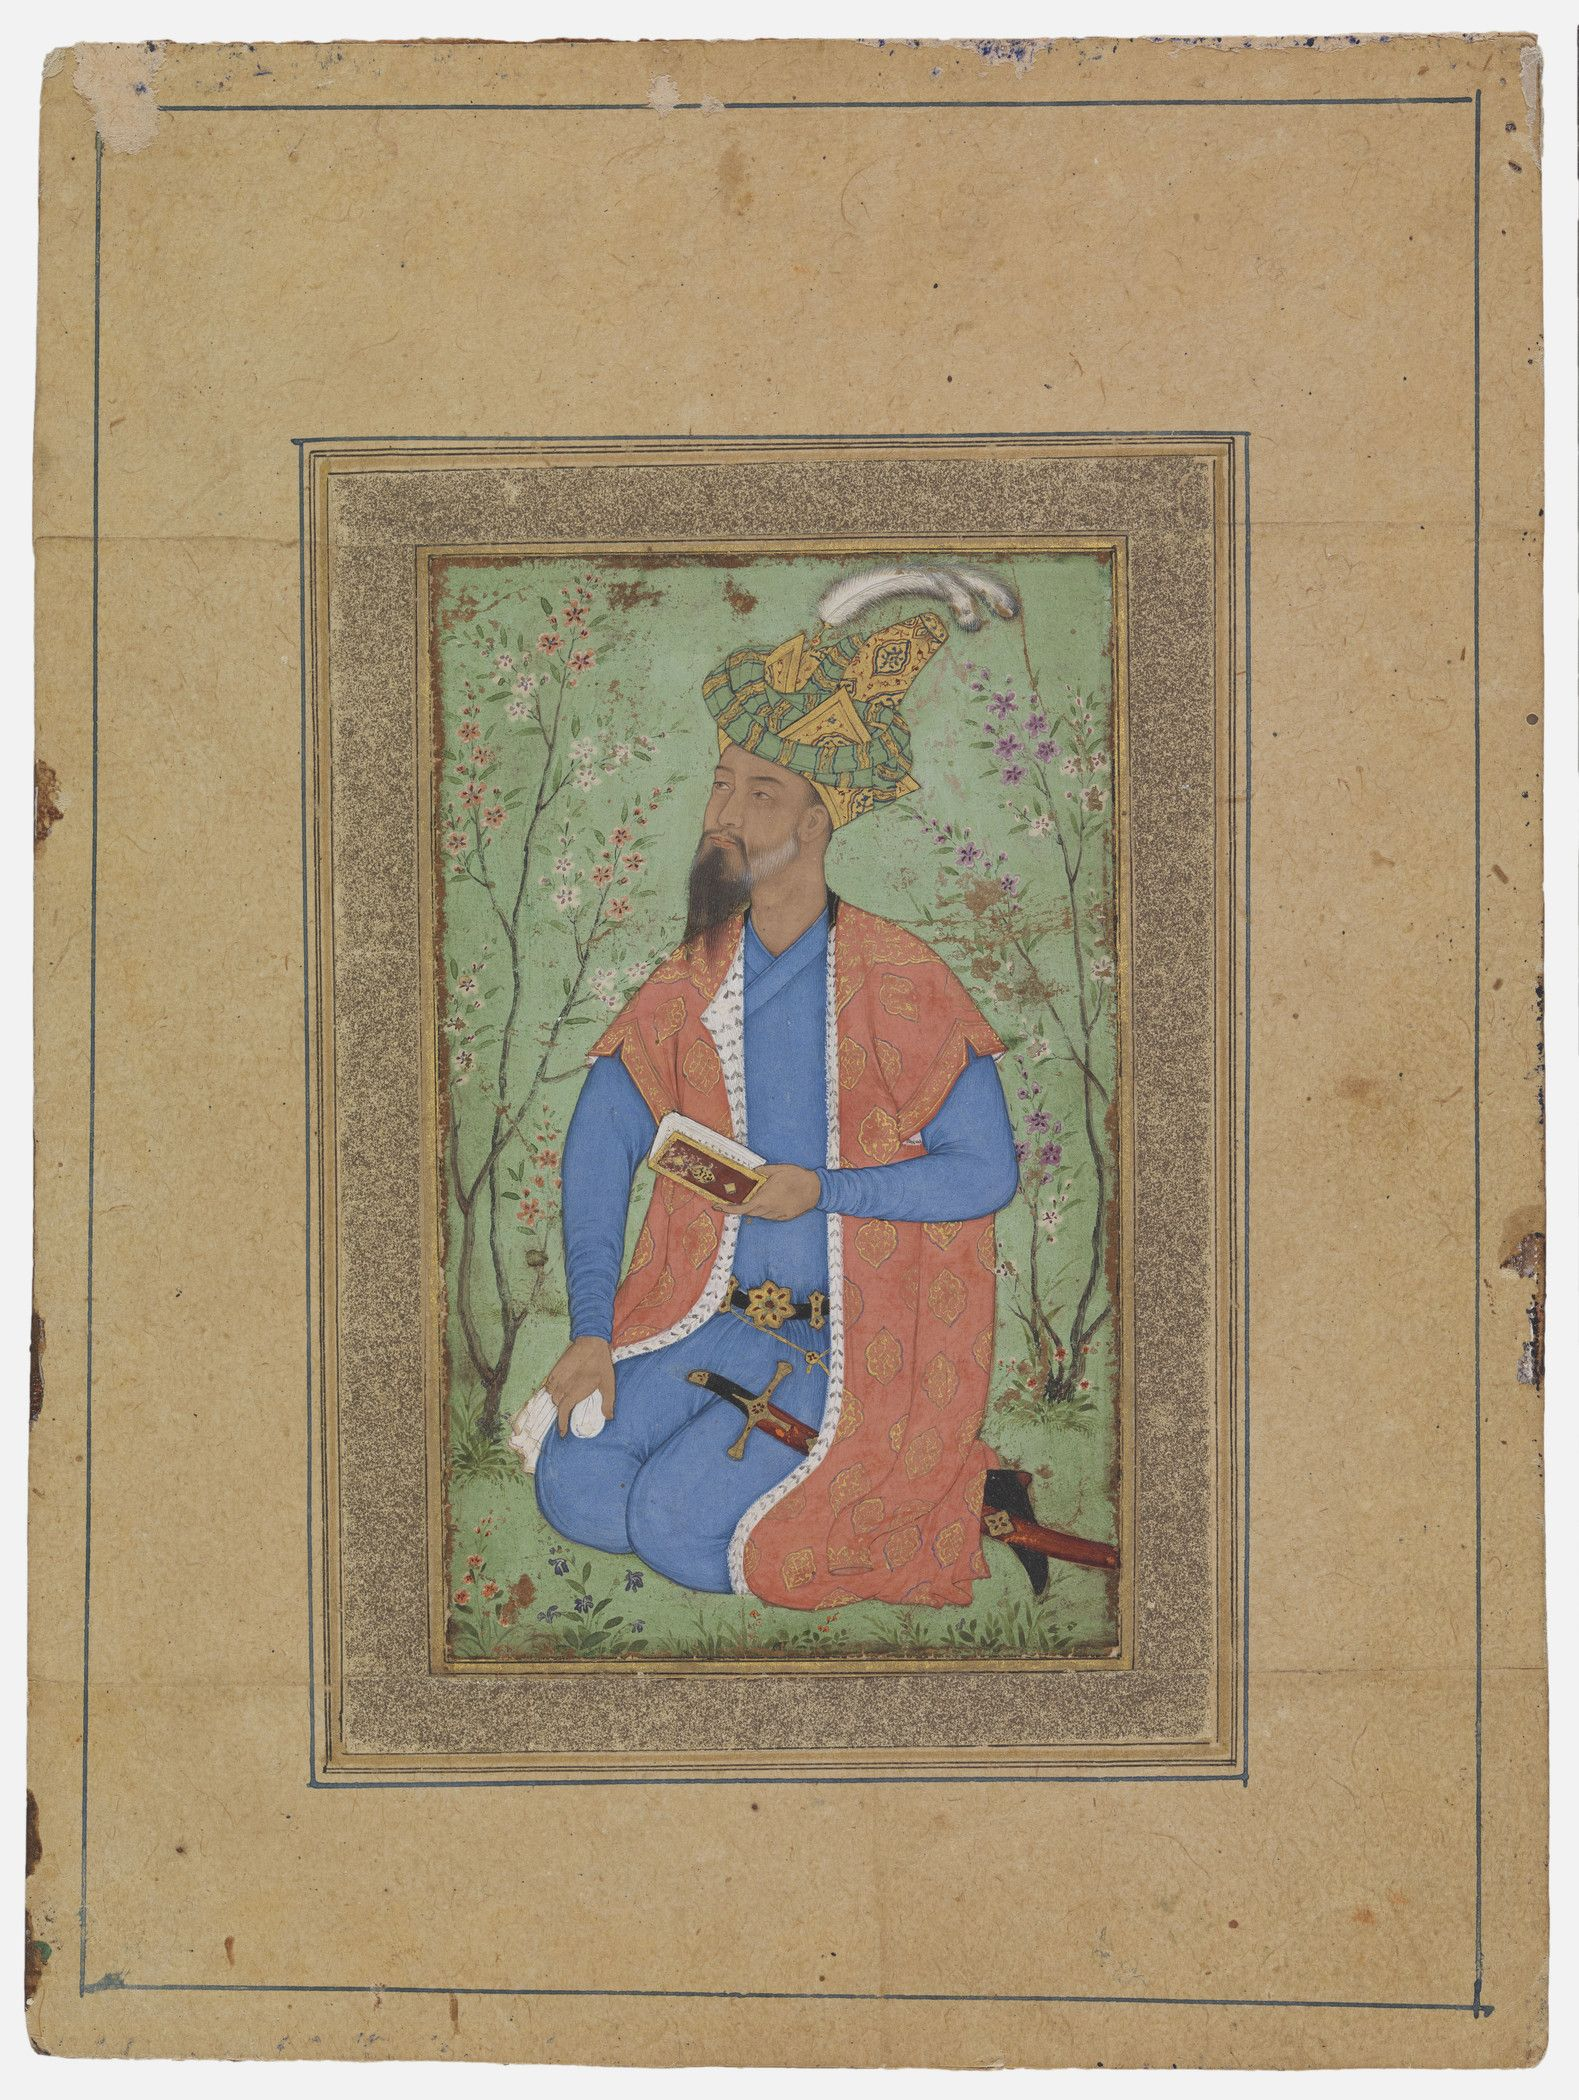 Mirza Hindal, son of Babur, in a Garden | Mughal Princes | Pinterest ...